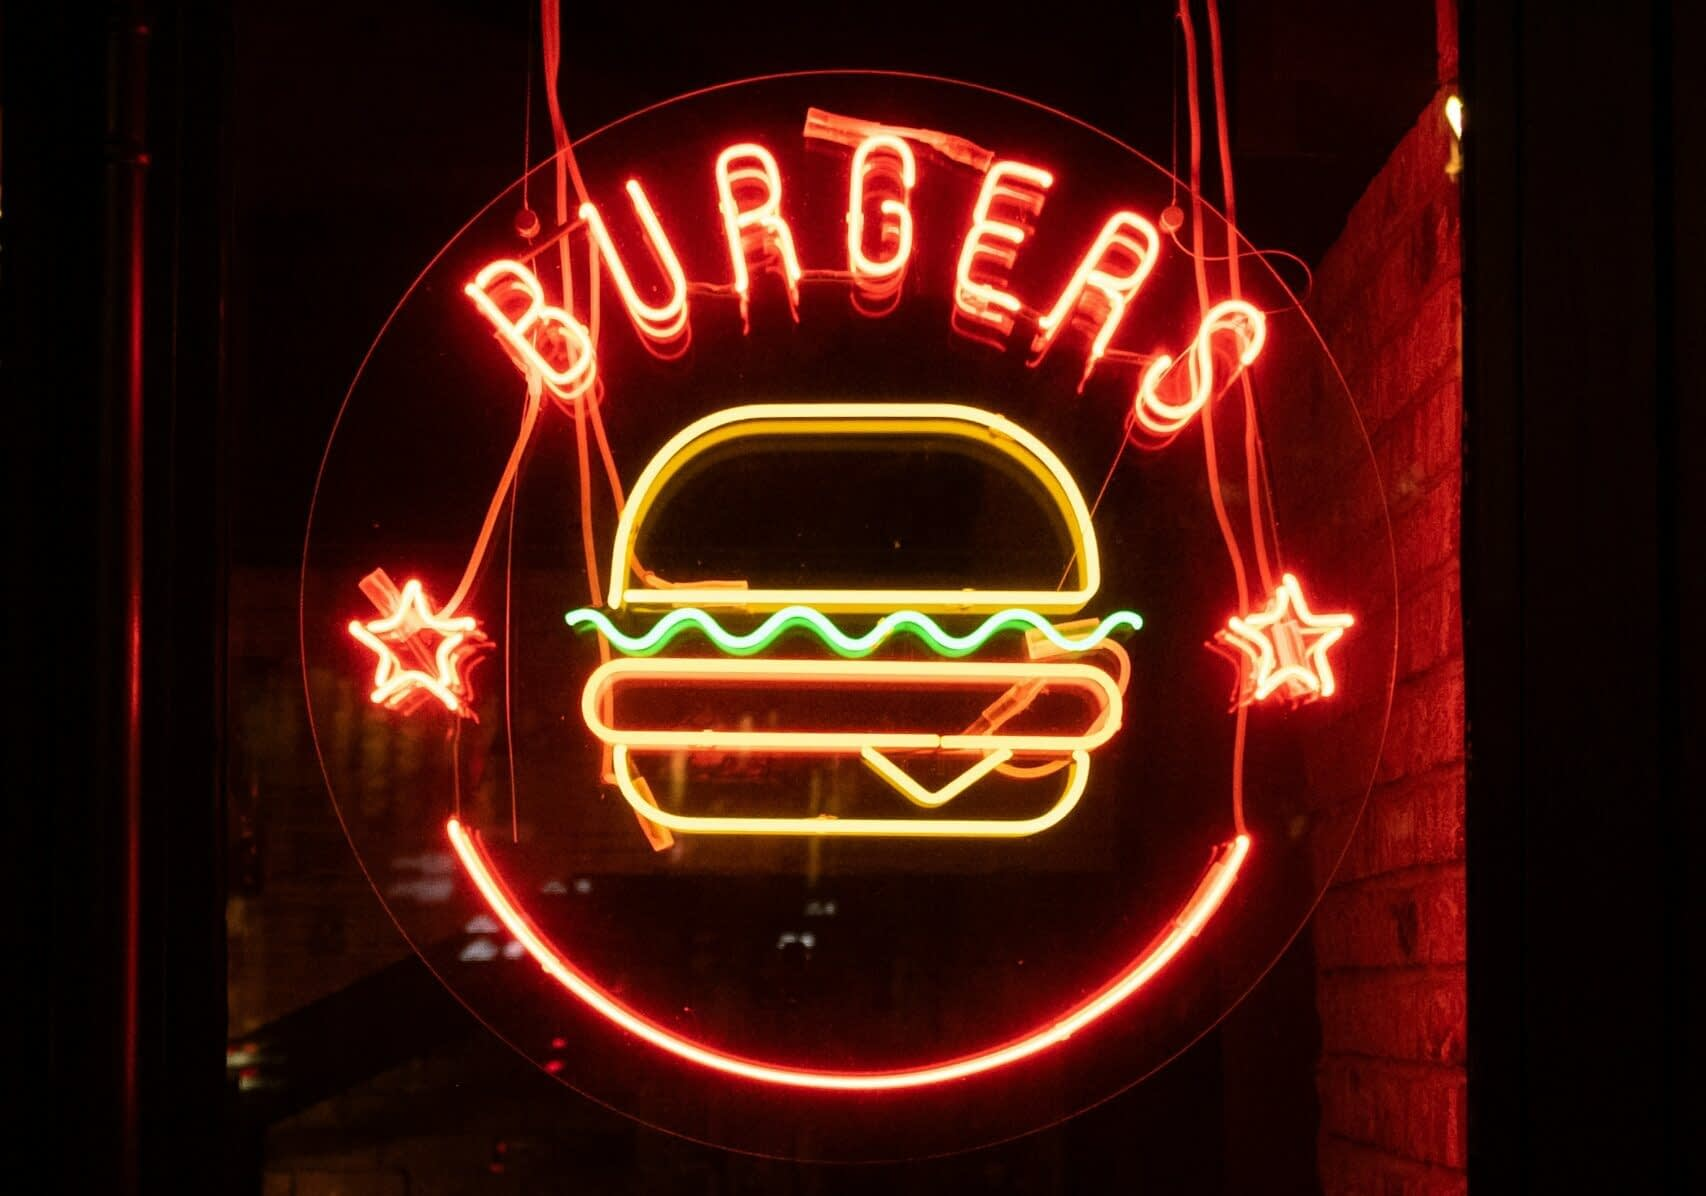 best burgers in helotes feature withred and yellow Burgers neon sign